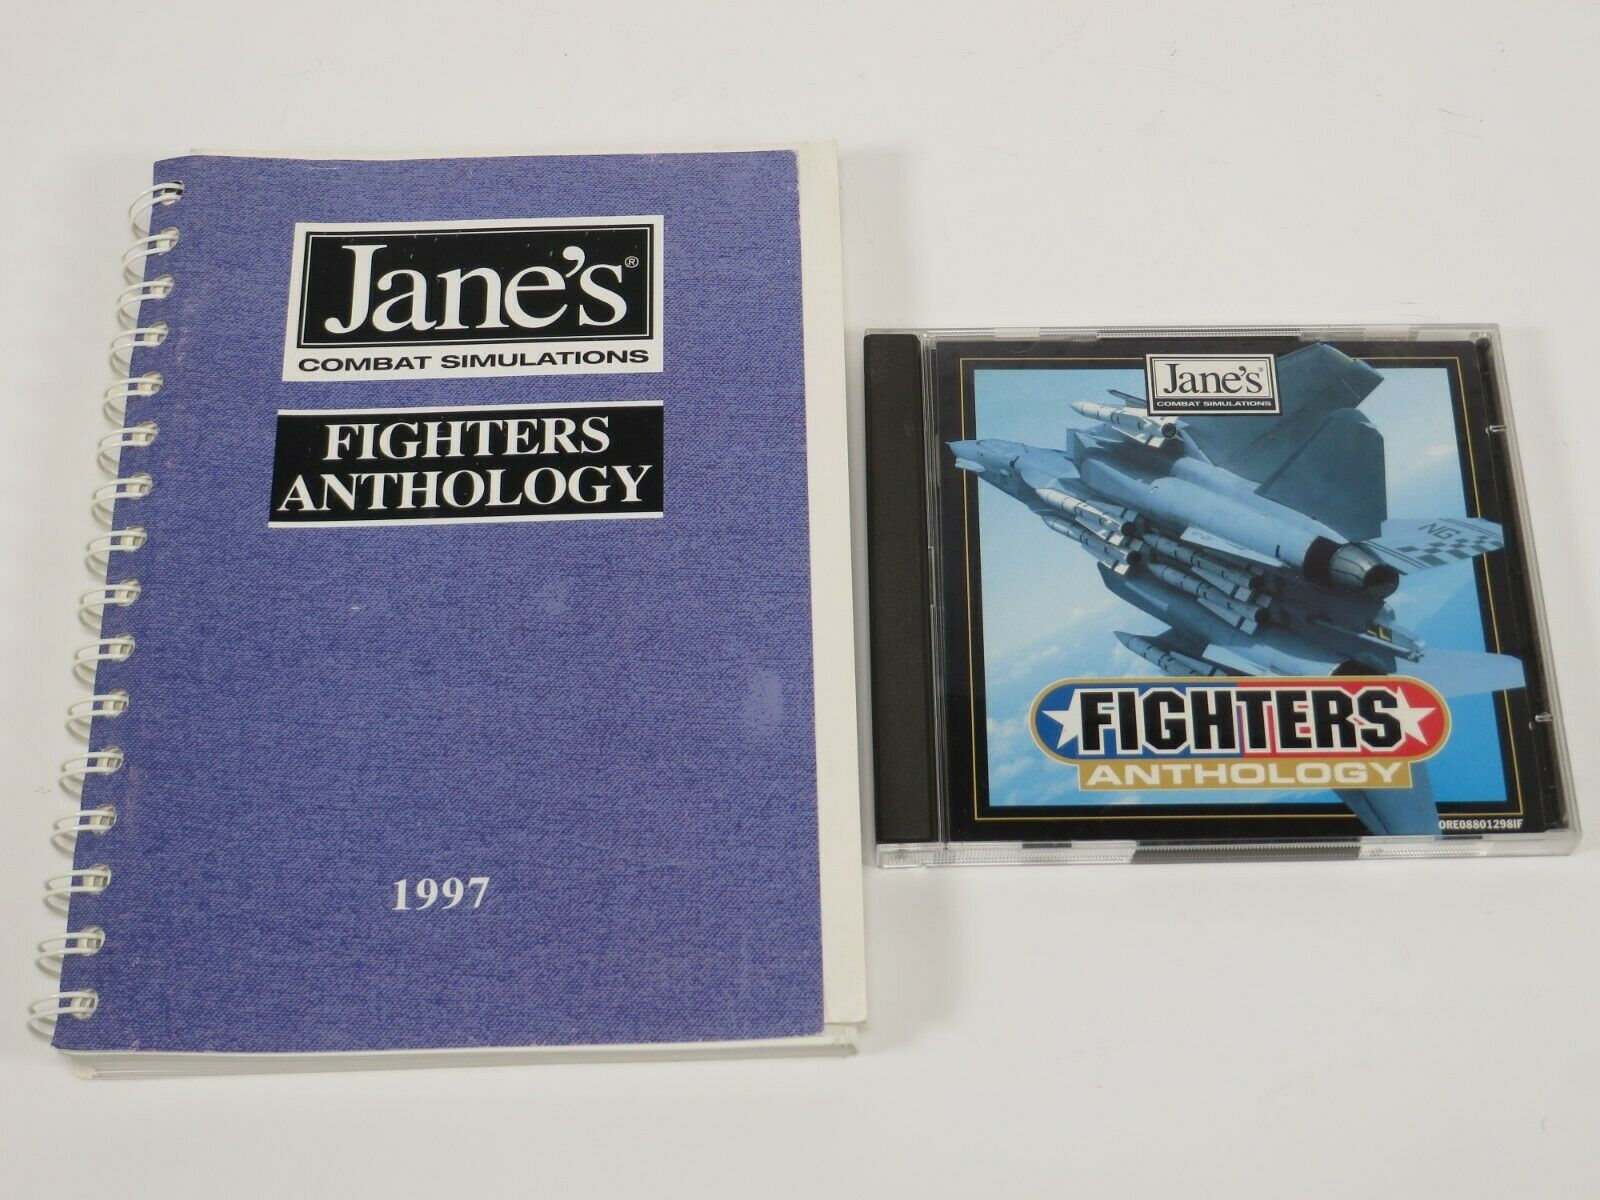 Computer Games - Jane's Fighters Anthology (PC, 1997) PC Vintage Computer Game Electronics Arts